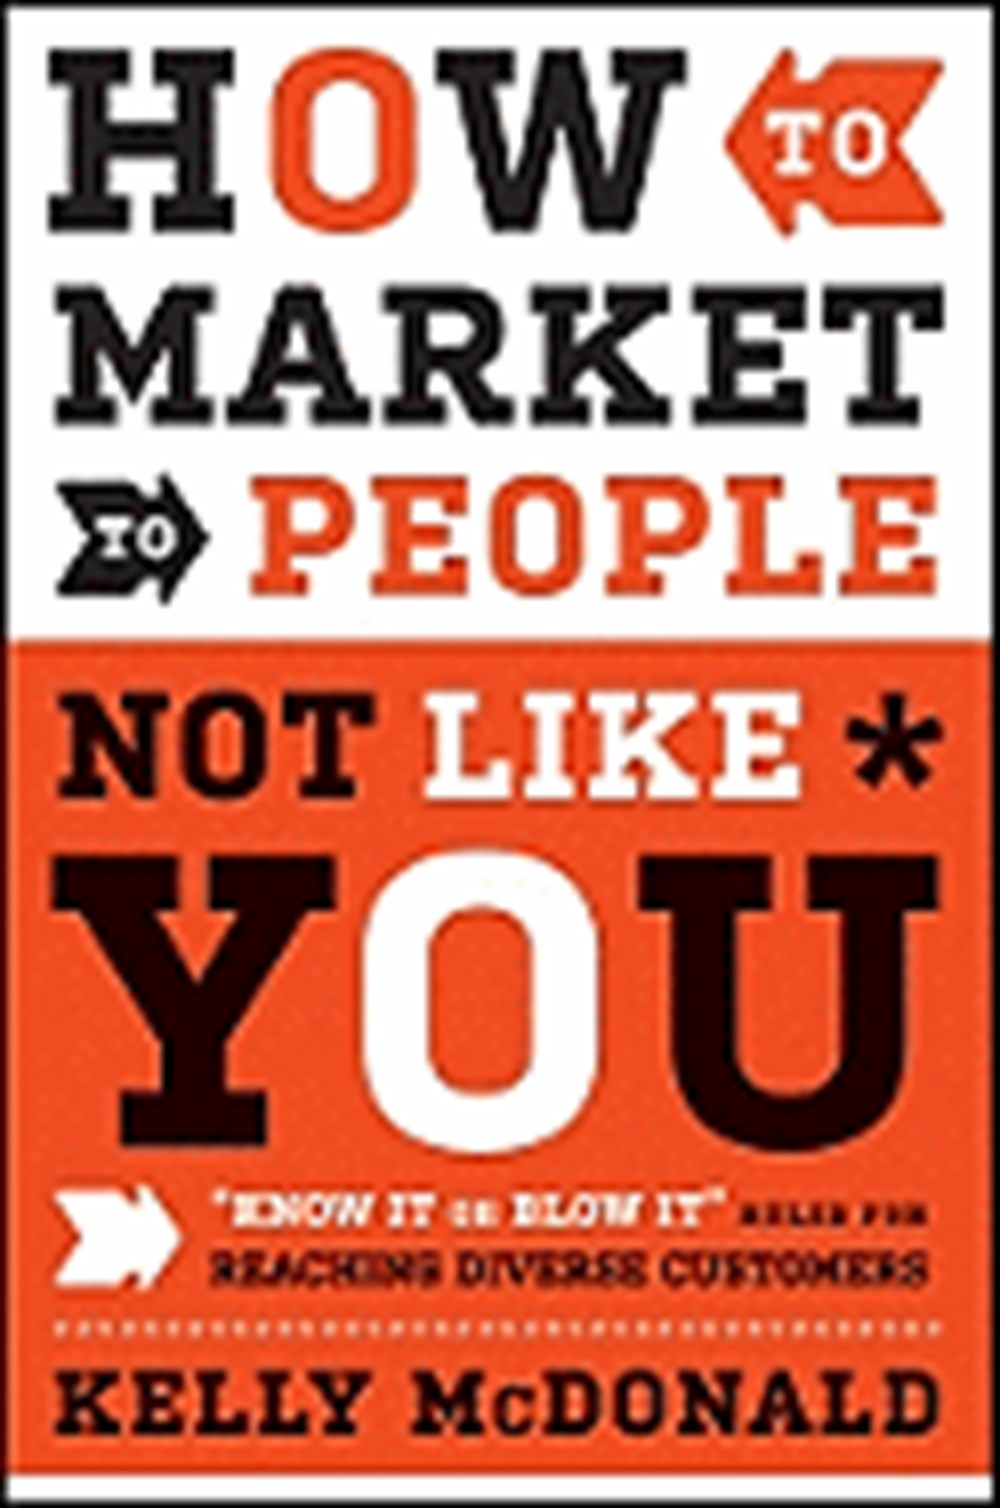 "How to Market to People Not Like You ""know It or Blow It"" Rules for Reaching Diverse Customers"